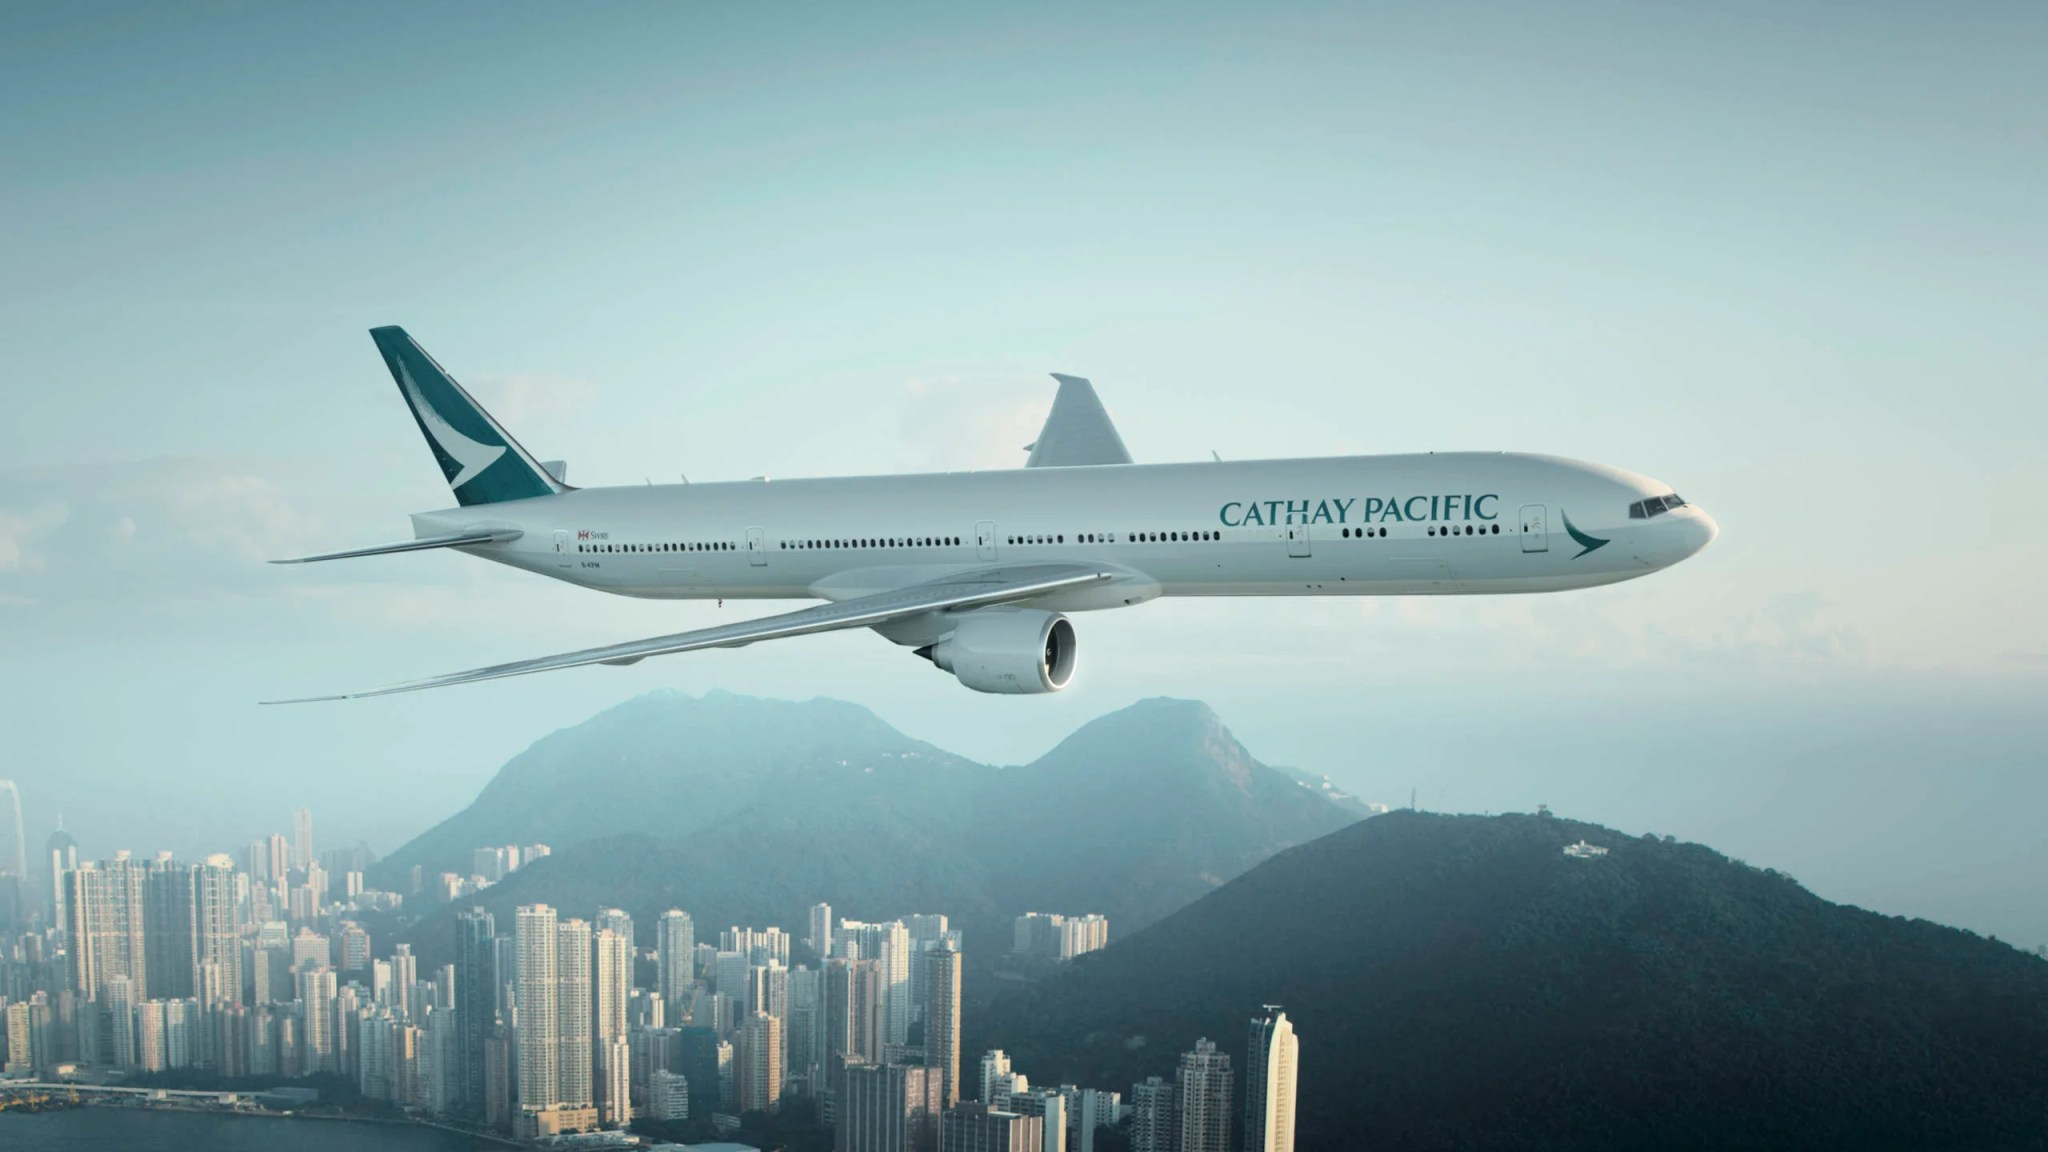 Get a 10% bonus when transferring credit card points to Cathay Pacific Asia Miles